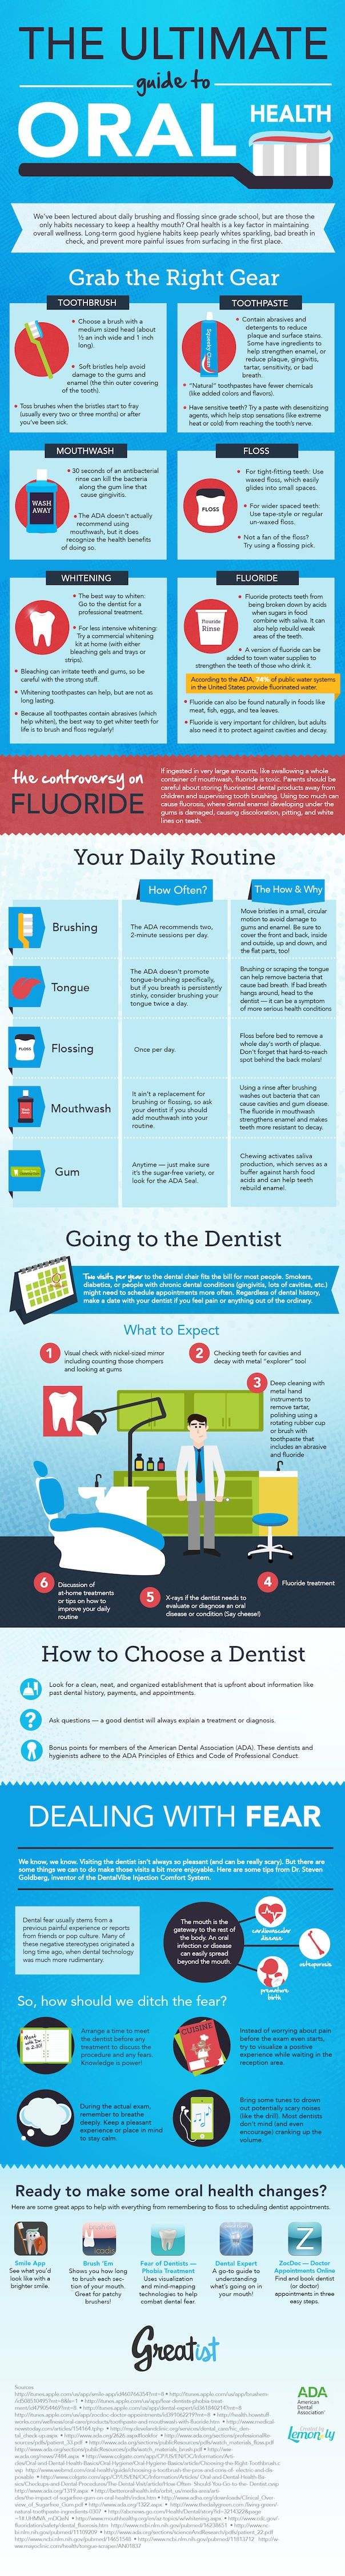 Good oral health goes far beyond brushing. Here's everything you need to know to keep your mouth clean, healthy, and pearly white.